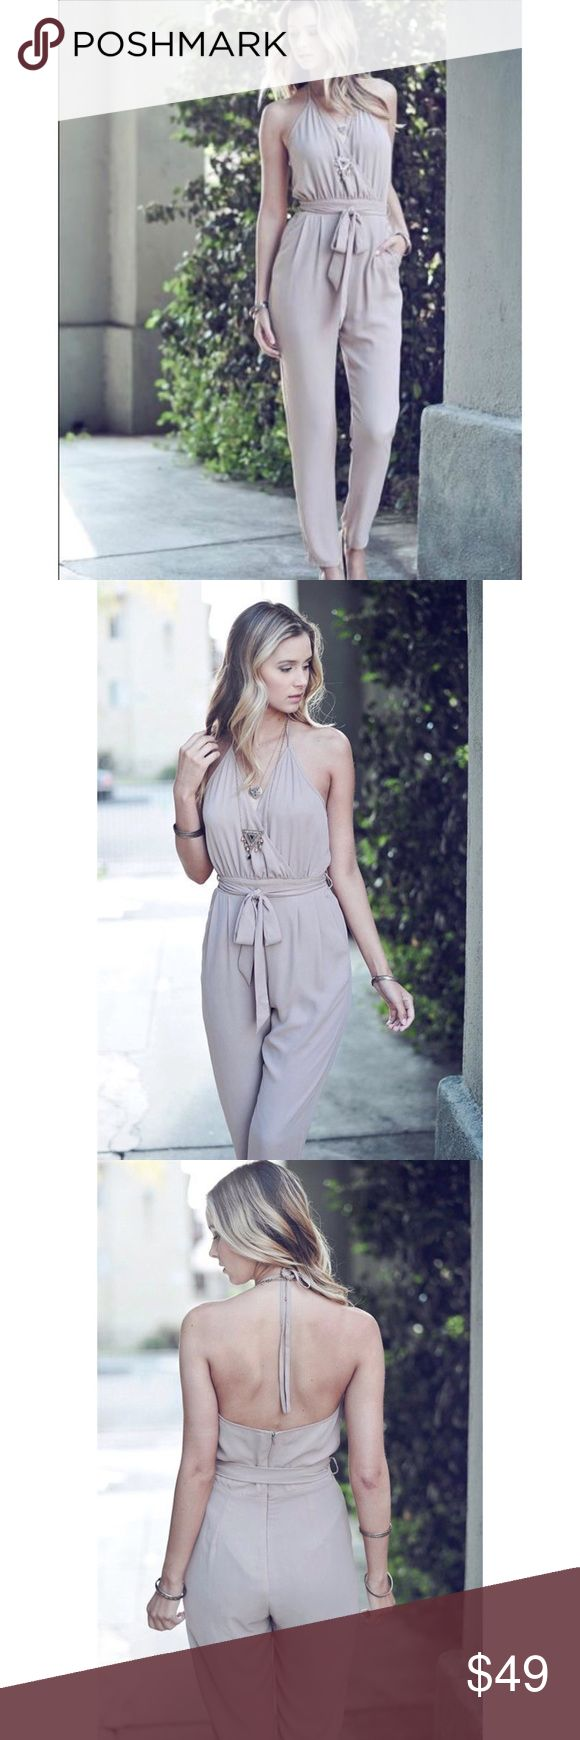 "(S,M,L) One Piece Halter Tie Jumpsuit  A chic jumpsuit for when you need a quick outfit   Halter tie with surplice top and waist tie make it easily adjustable  Self/Lining 100% Polyester  Hand wash cold, line dry  Approximate Measurements   SMALL  Bust: 32"" Waist: 26"" Inseam: 29"" Leg Opening: 11""  MEDIUM  Bust: 36"" Waist: 28"" Inseam: 29"" Leg Opening: 12""  LARGE  Bust: 38"" Waist: 30"" Inseam: 29"" Leg Opening: 13"" Double Zero Pants Jumpsuits & Rompers"